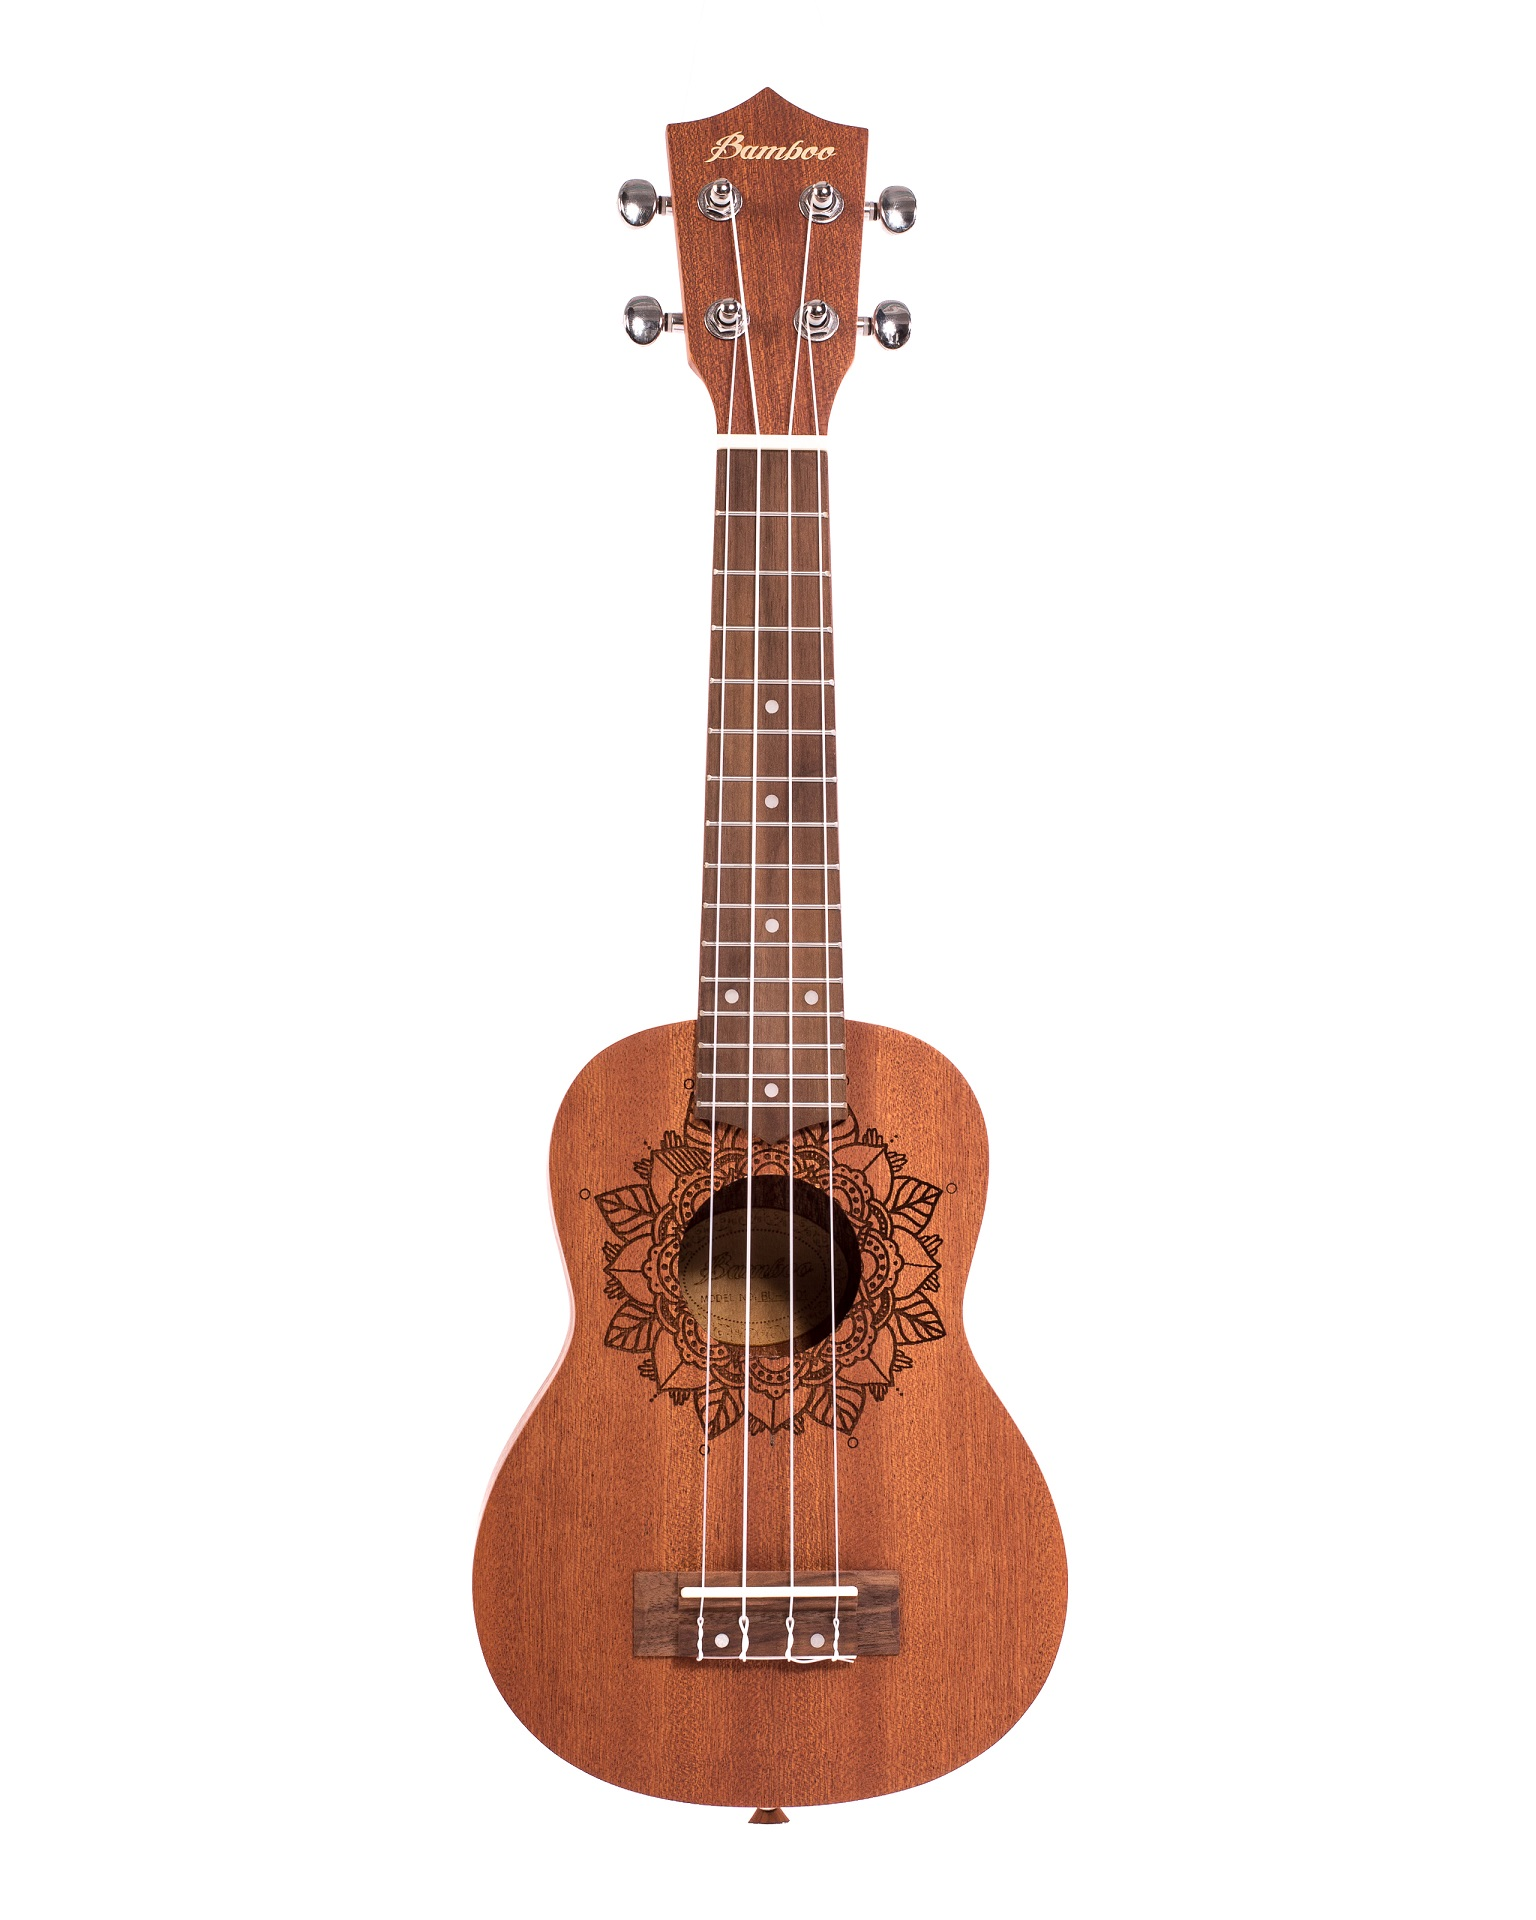 BAMBOO Kailua Concert Ukulele Earth Series Acoustic | For Beginners and Professionals | Sapele & Walnut | With Gig Bag (New Generation)